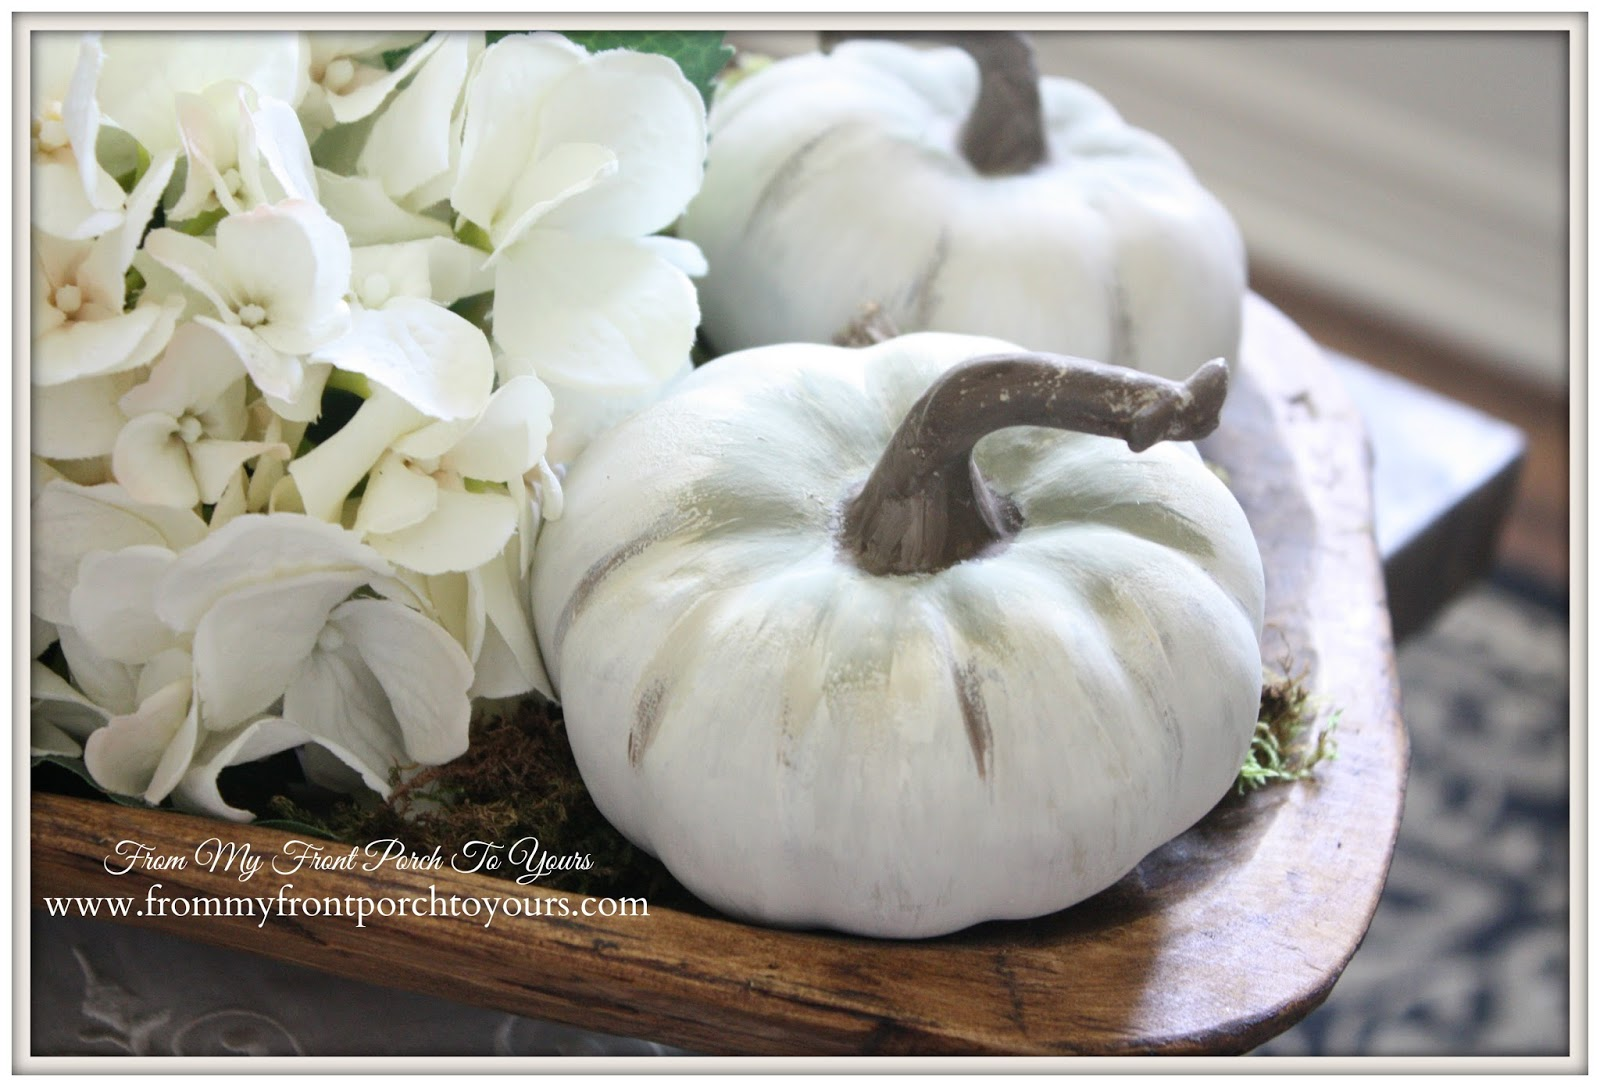 From My Front Porch To Yours-How To Turn $1 Pumpkins Into Show Stoppers Using Chalk Paint